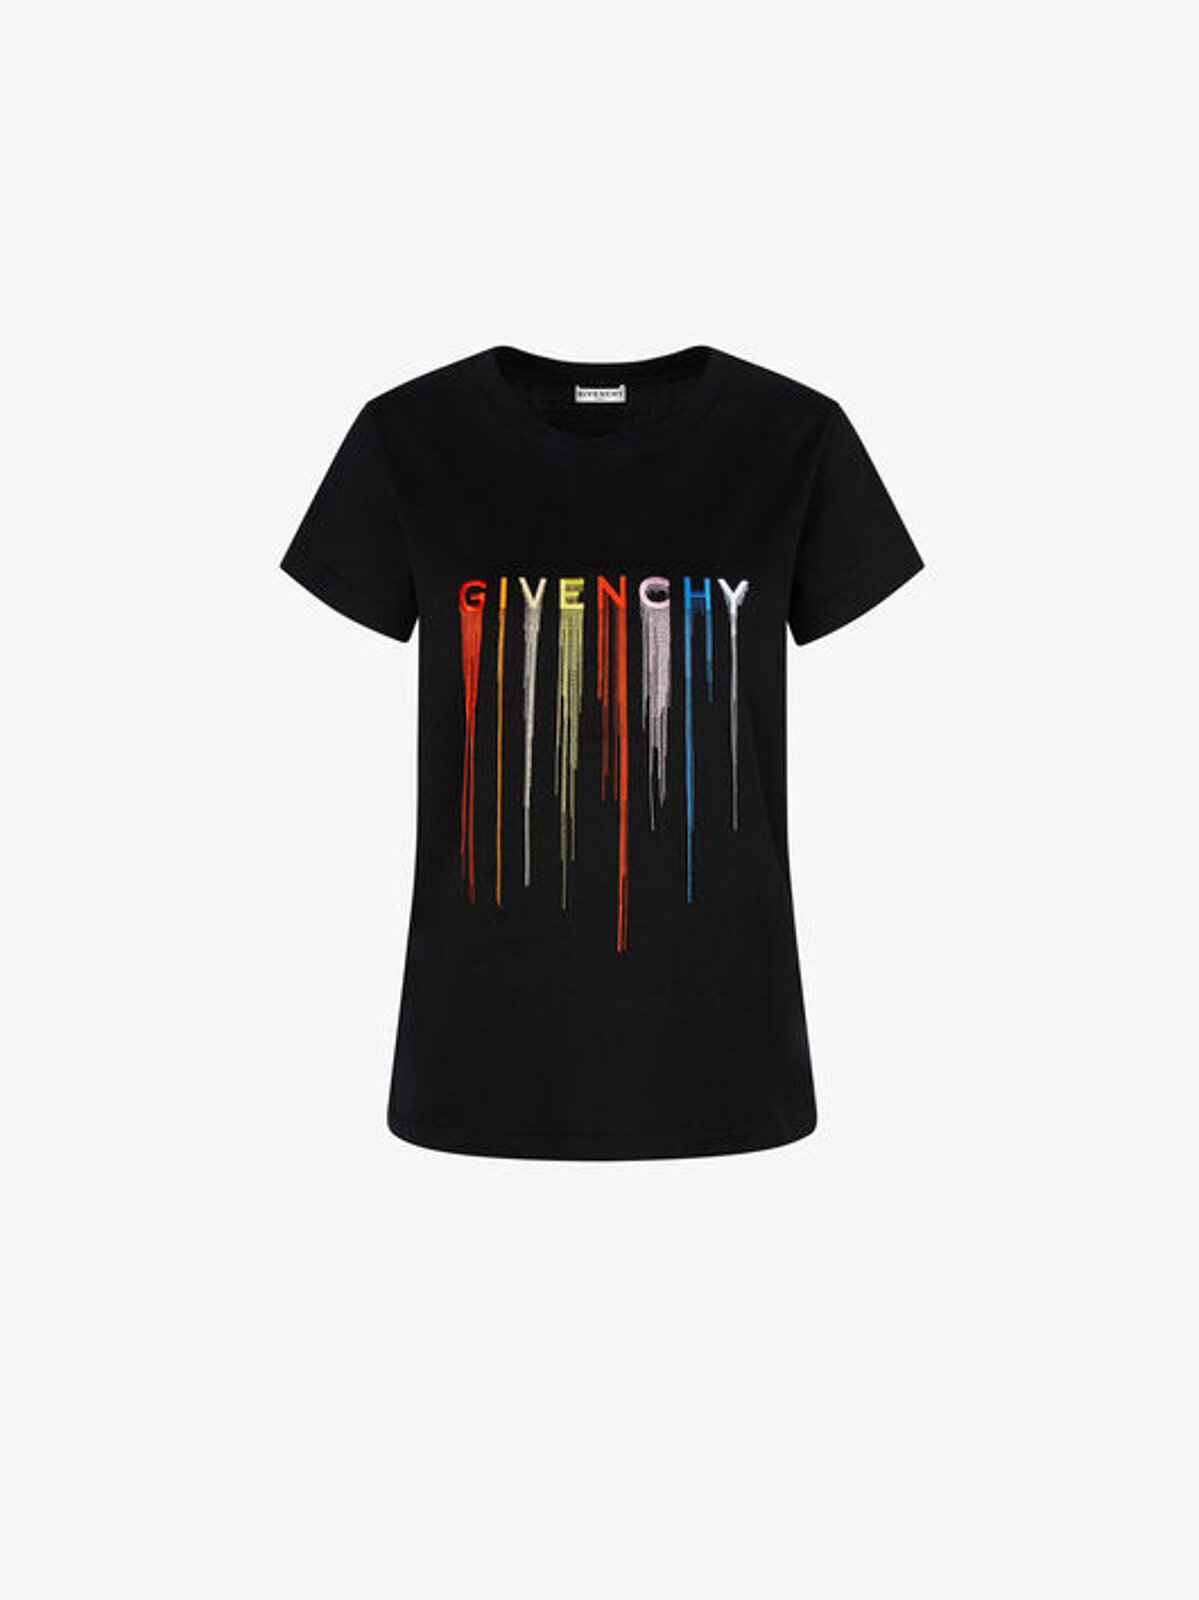 T-Shirt Slim Fit Con Ricamo Multicolore Givenchy - Givenchy